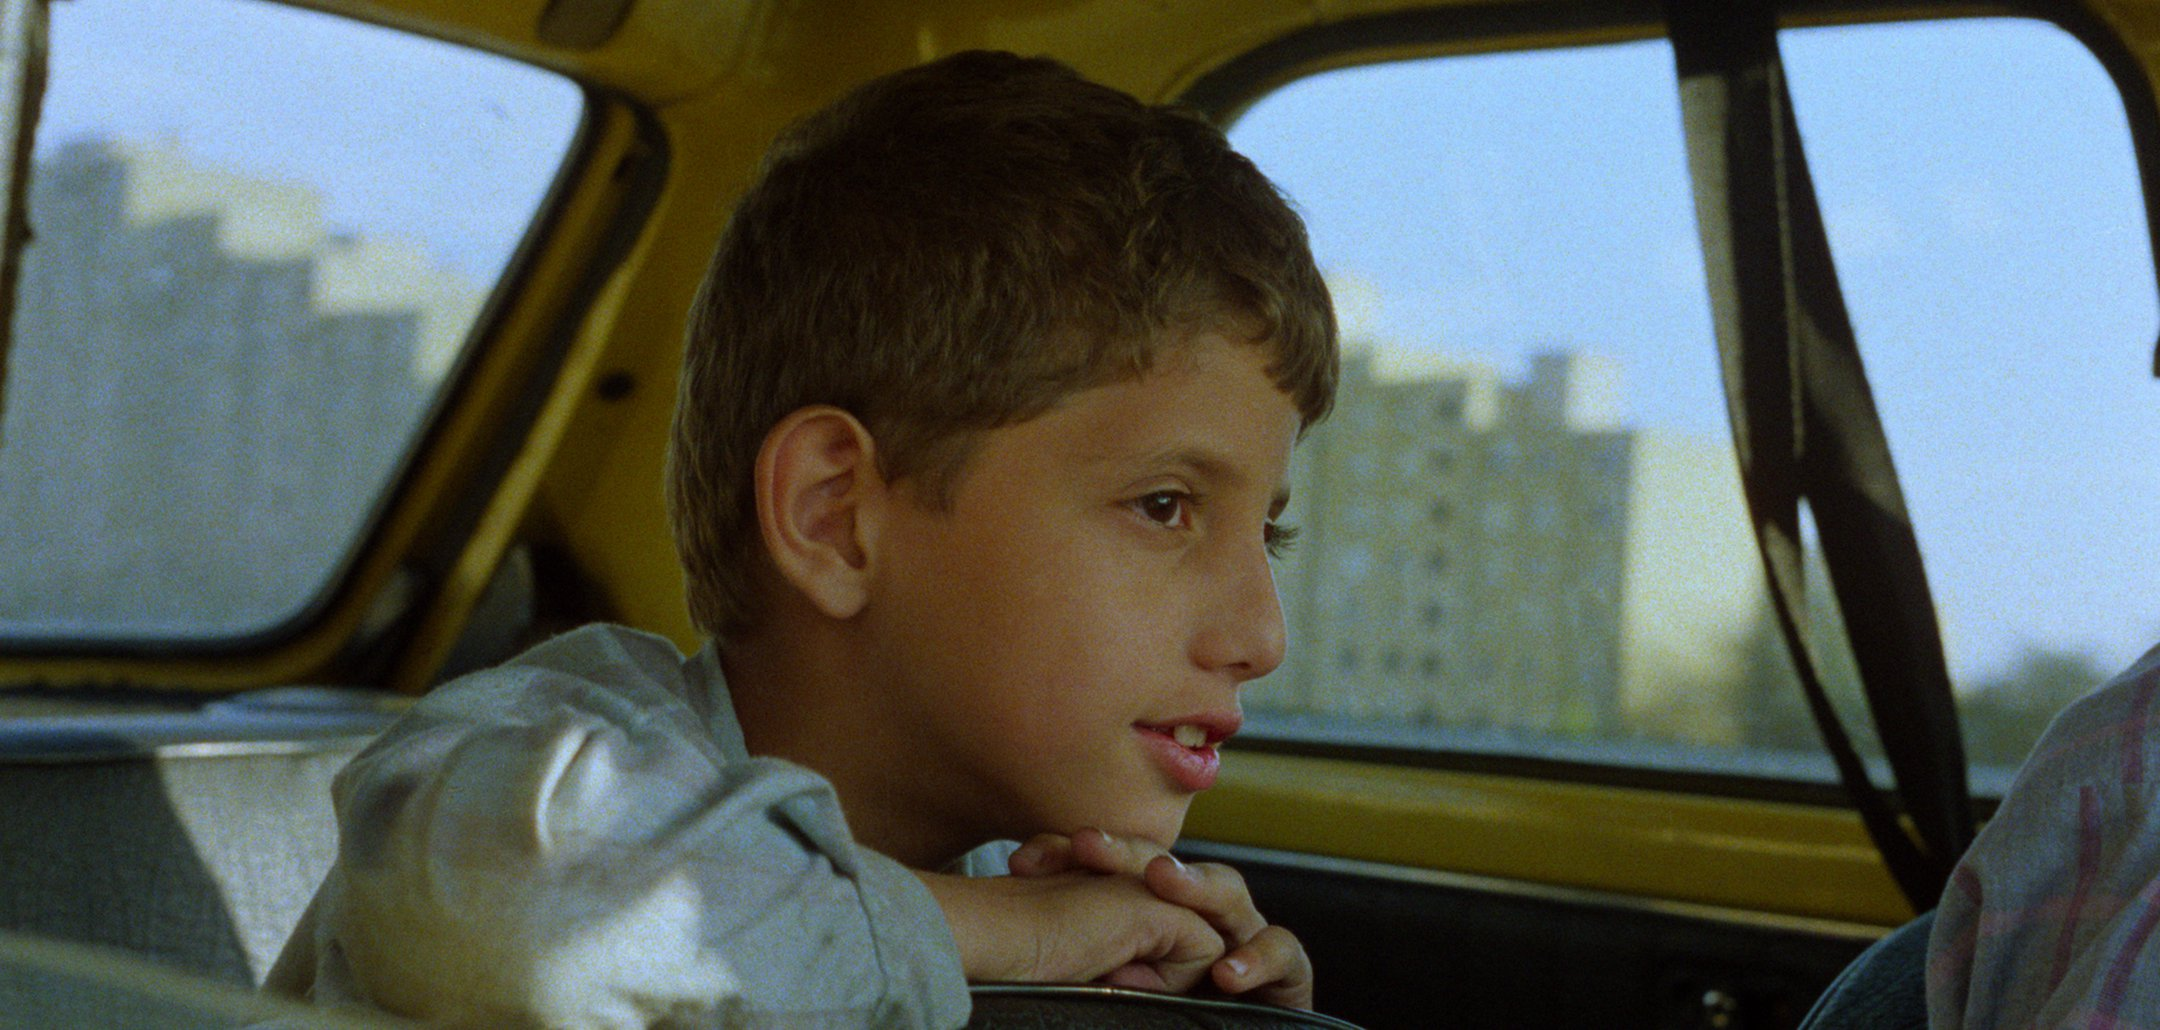 A young boy in the back of a car in a still from 'And Life Goes On' (1992)